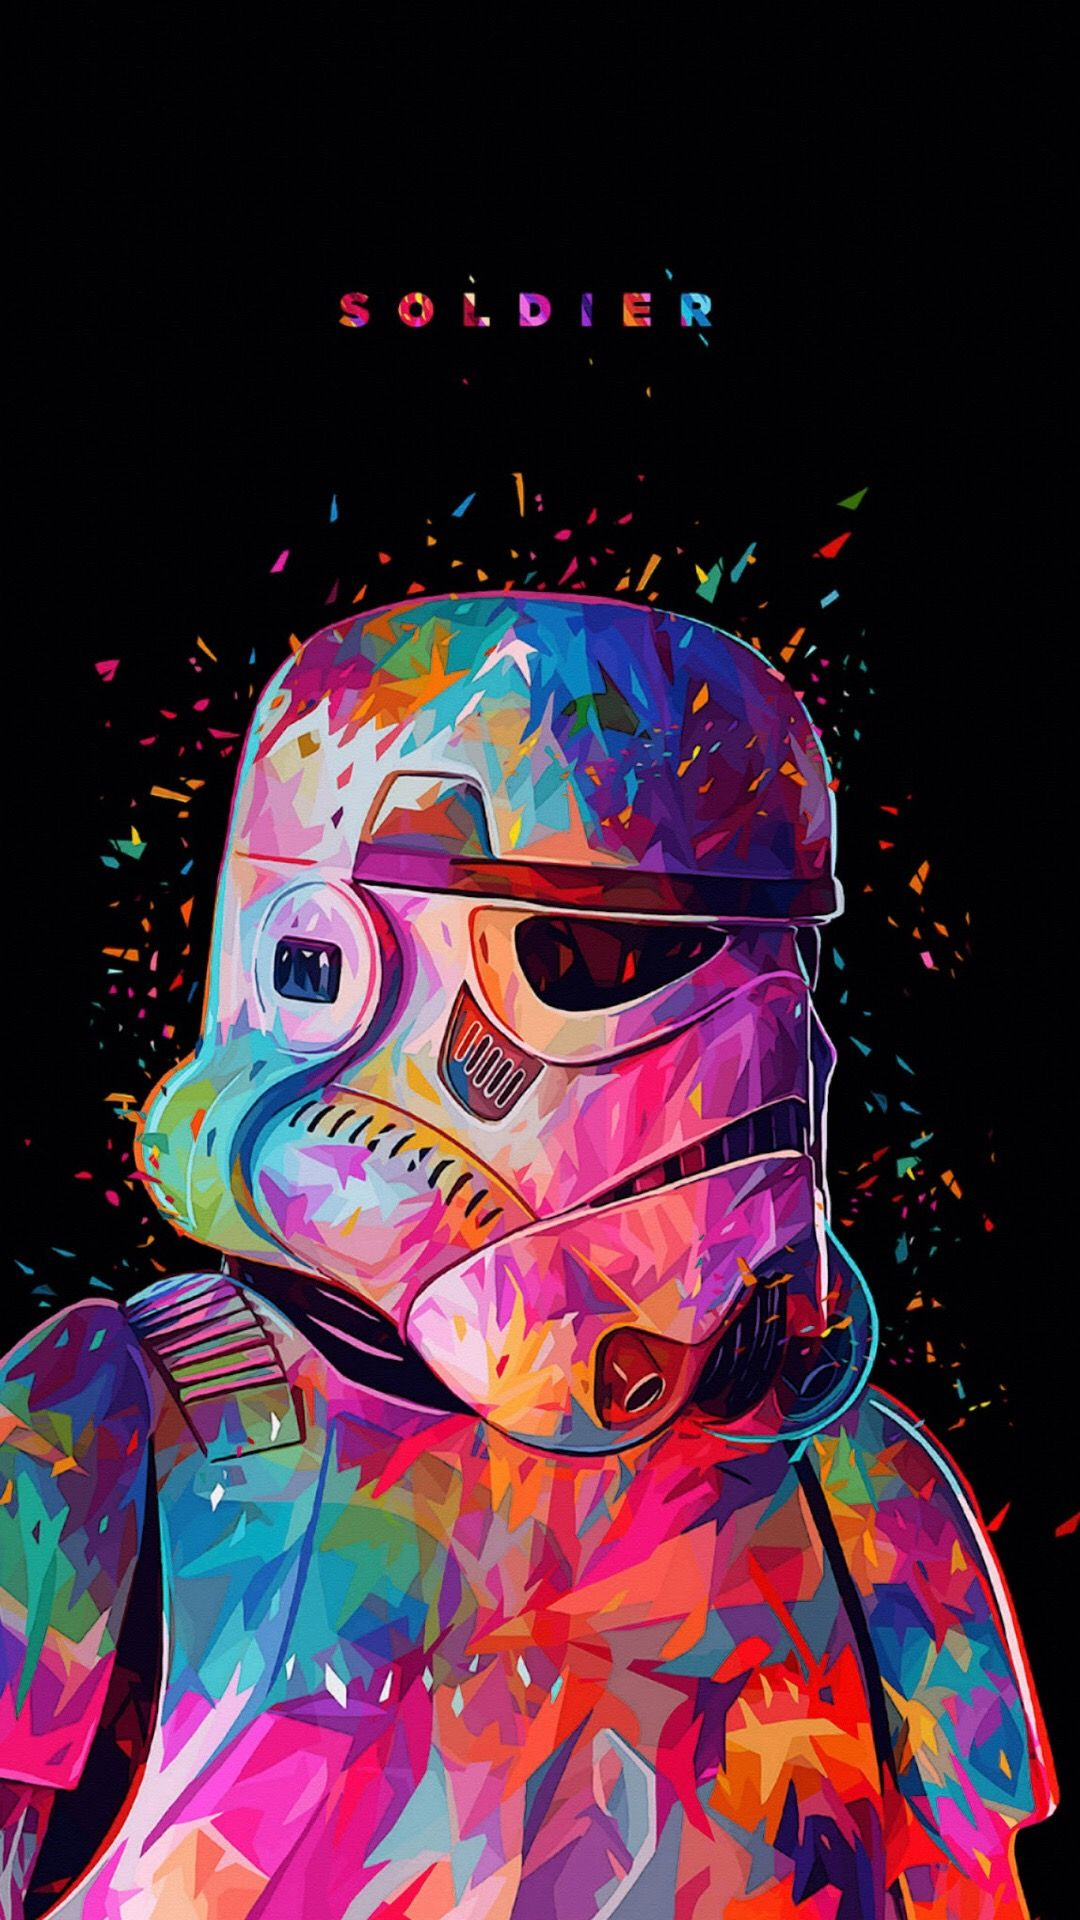 Iphone Star Wars Stormtrooper Color Black Wallpaper Star Wars Art Star Wars Wallpaper Star Wars Poster